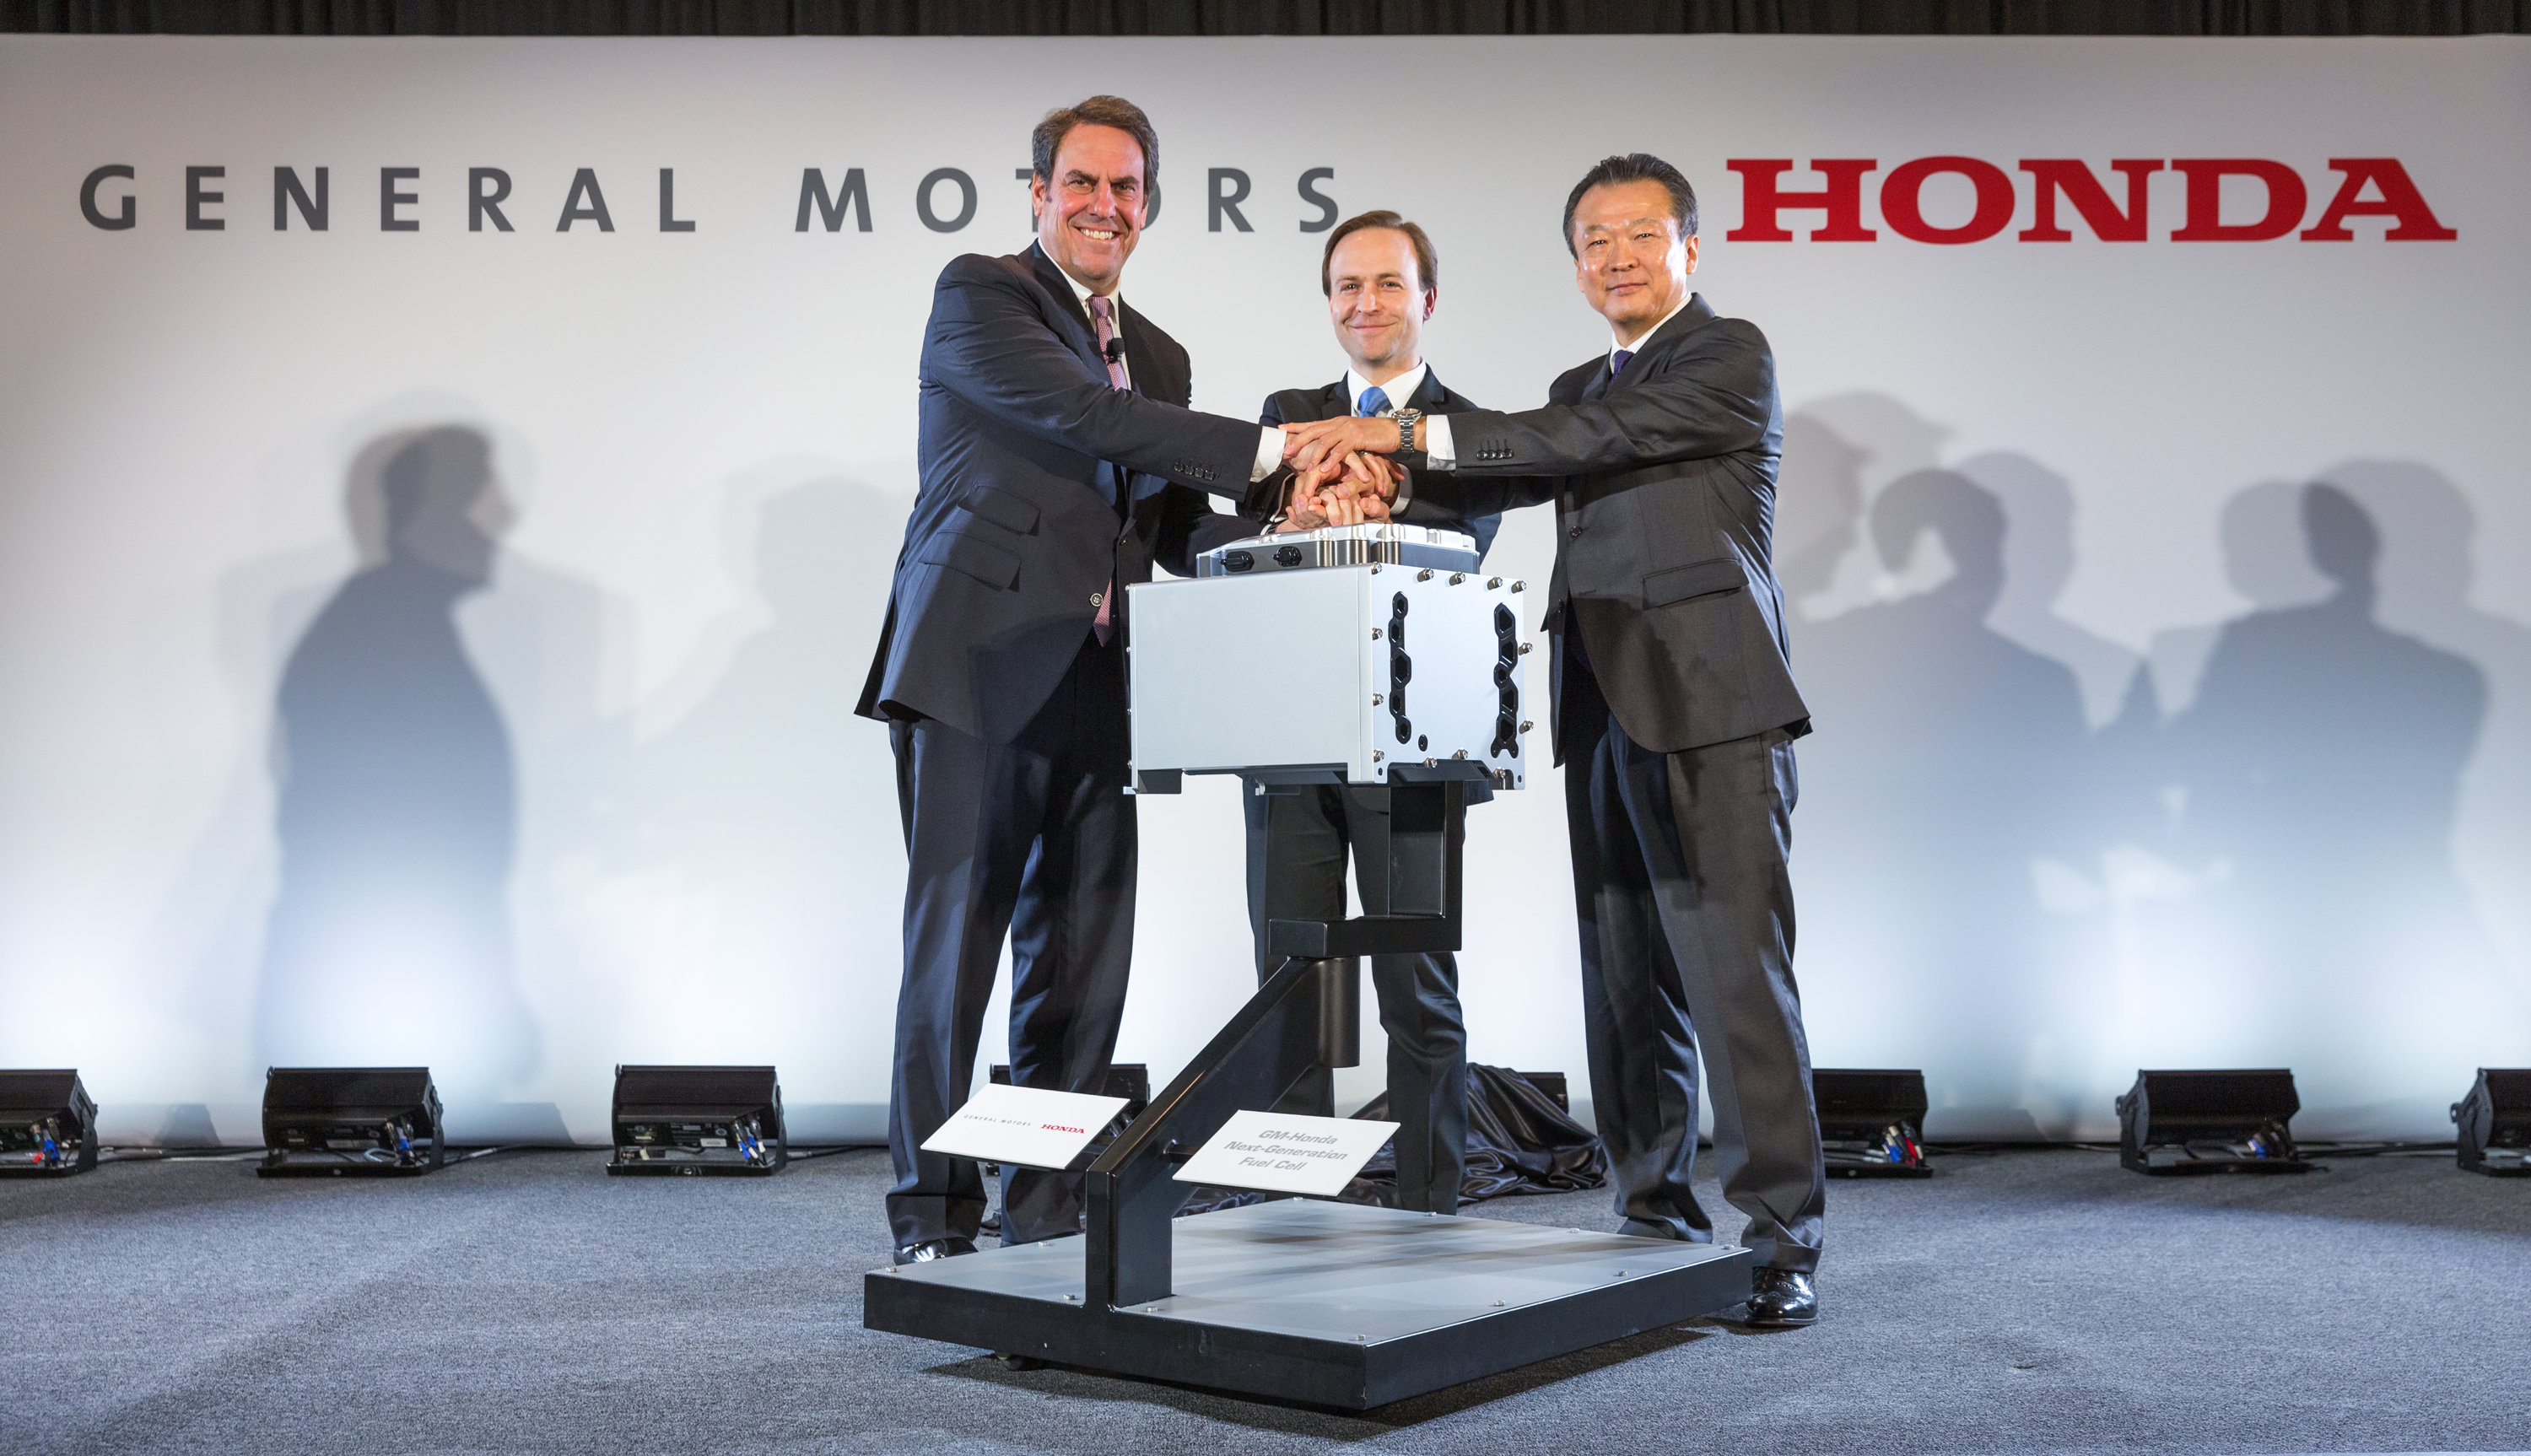 GM and Honda to Establish Industry-First Joint Fuel Cell